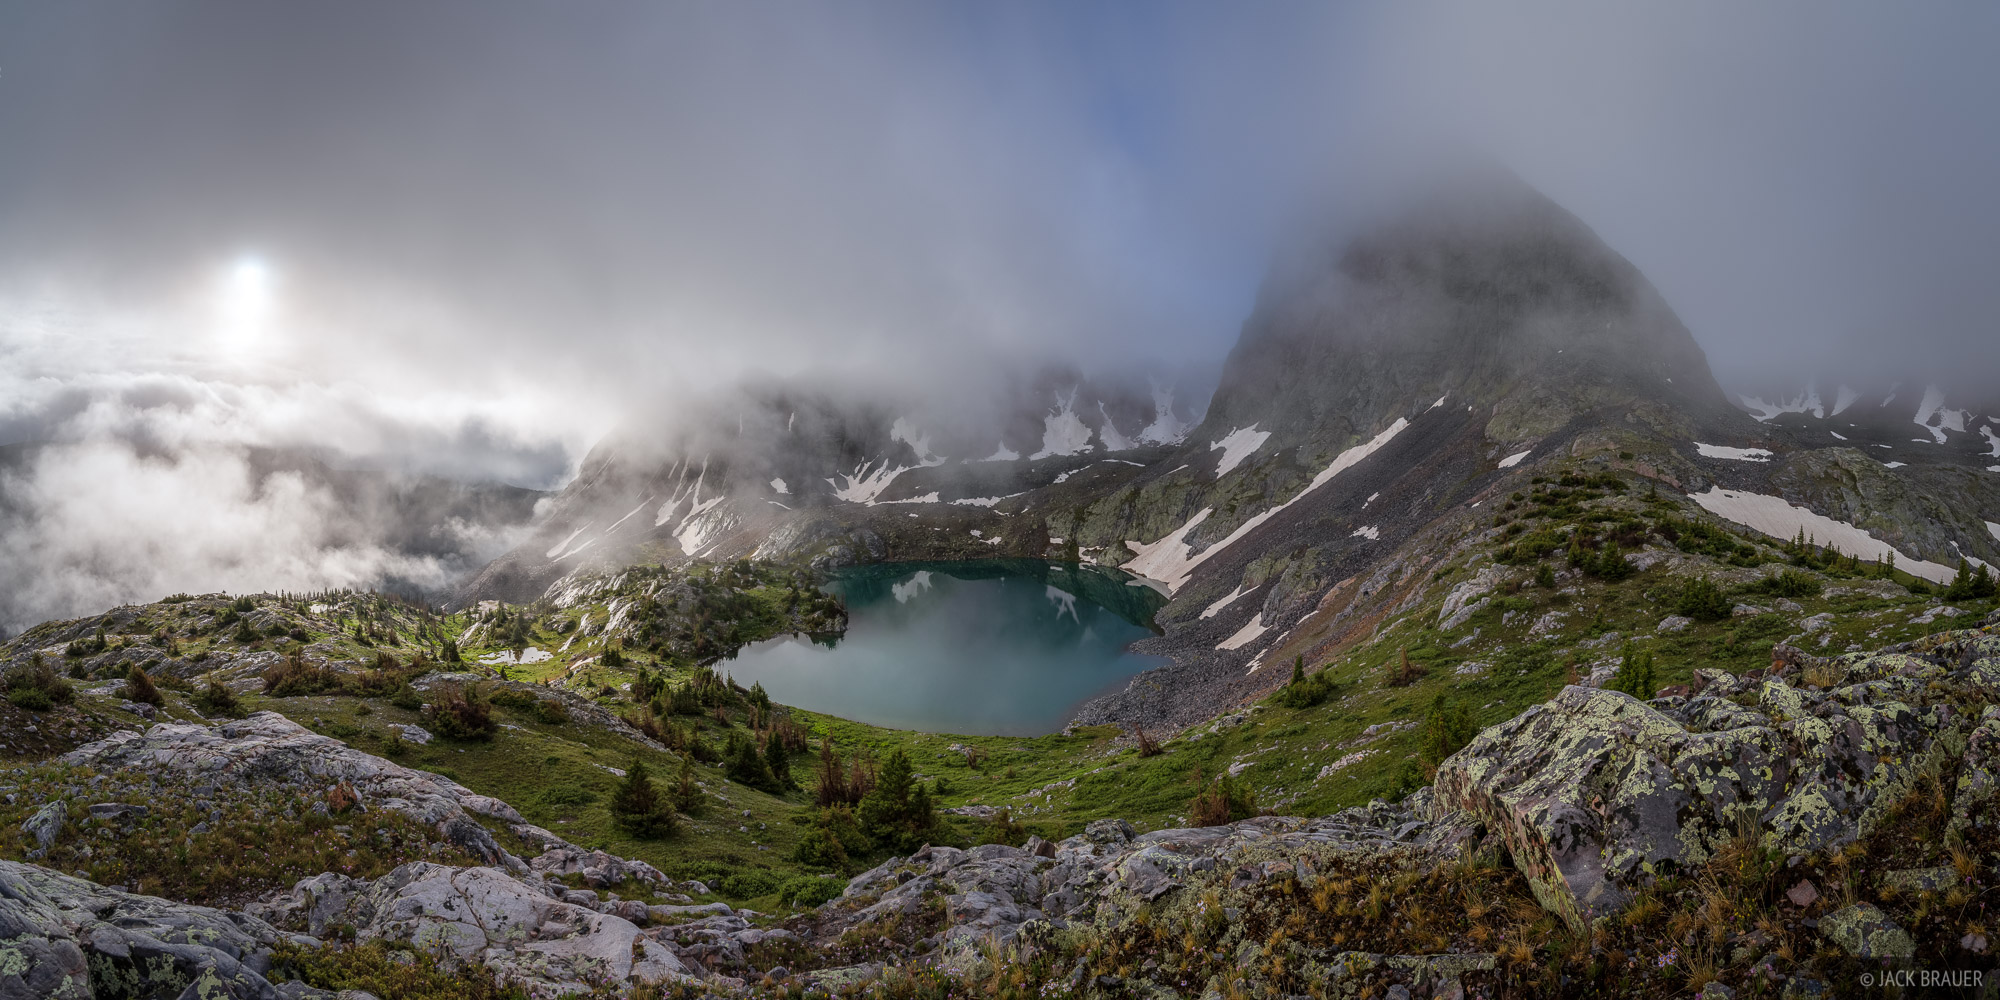 The morning sun pokes through rain clouds above a remote, unnamed lake deep in the Weminuche Wilderness.